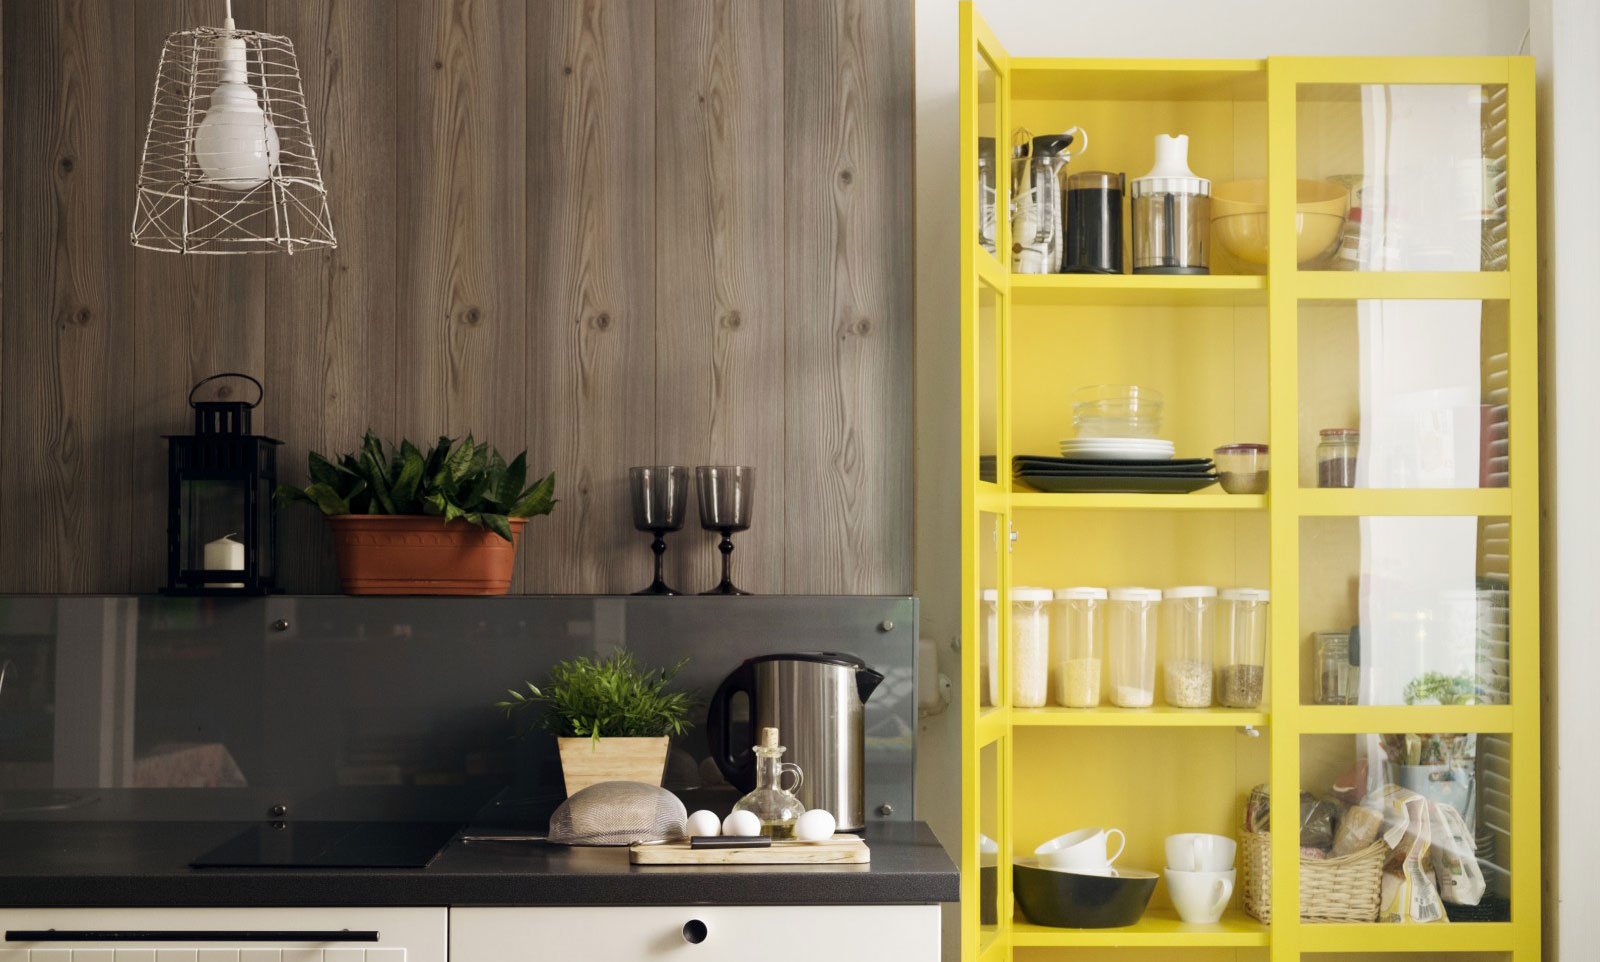 Art-and-color-are-fast-ways-to-personalize-a-small-kitchen